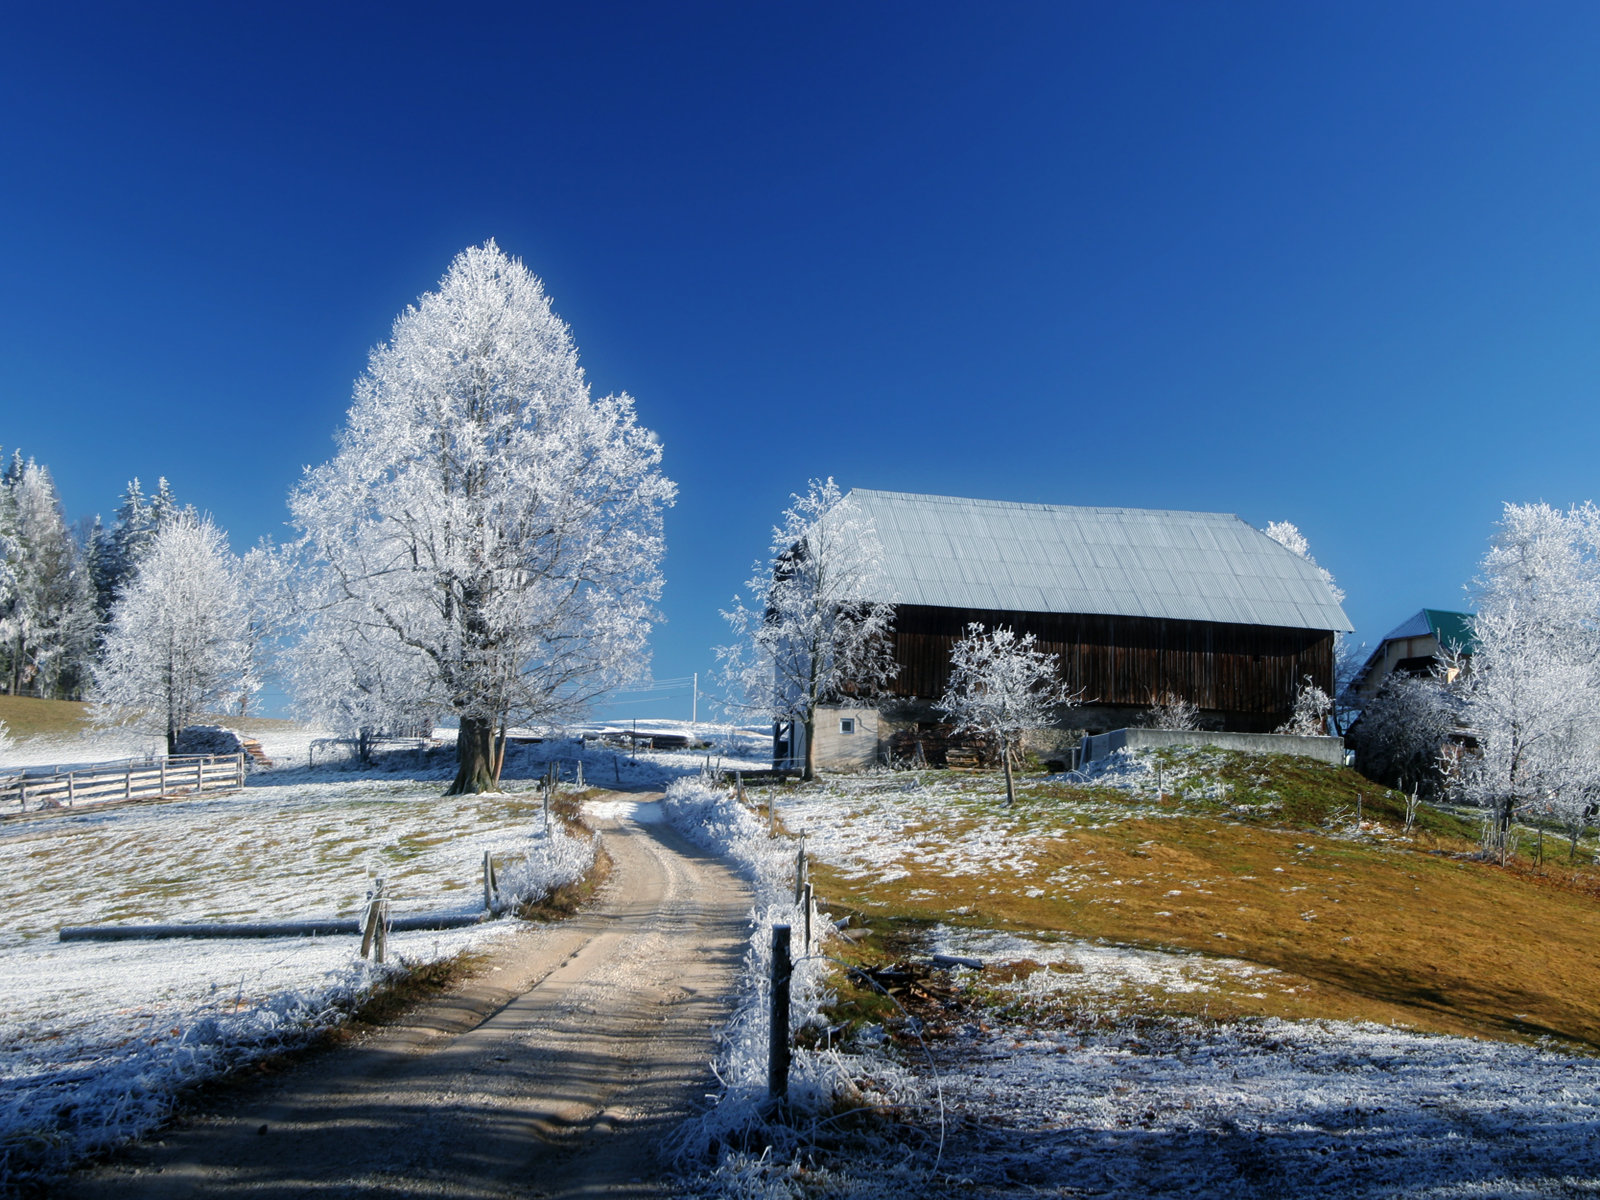 Winter Barn Scenes Wallpaper Wallpapersafari